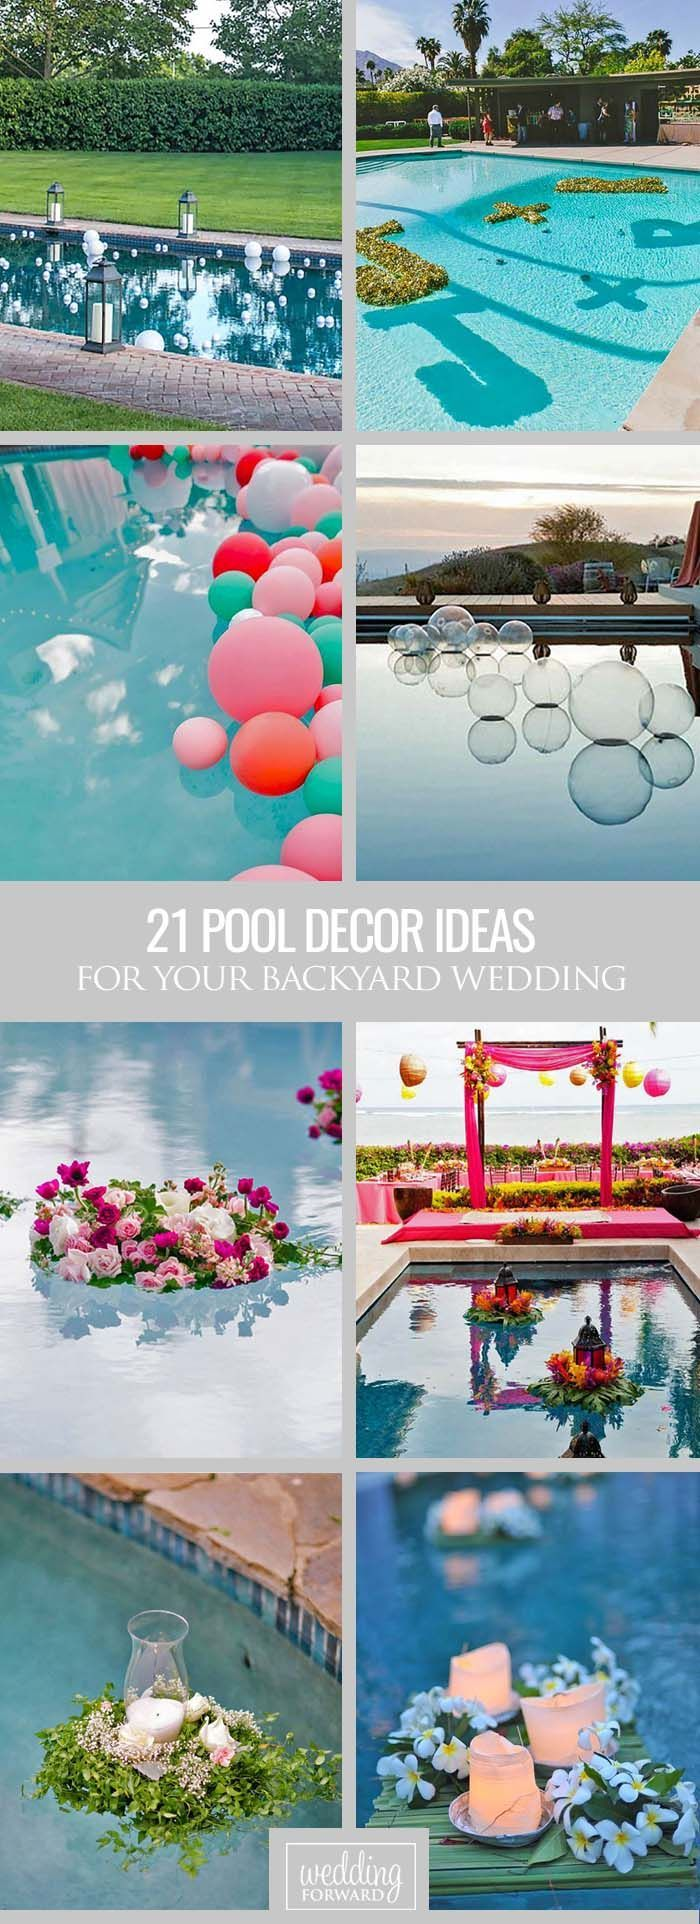 Ideas for wedding decorations outside   Wedding Pool Party Decoration Ideas For Your Backyard Wedding